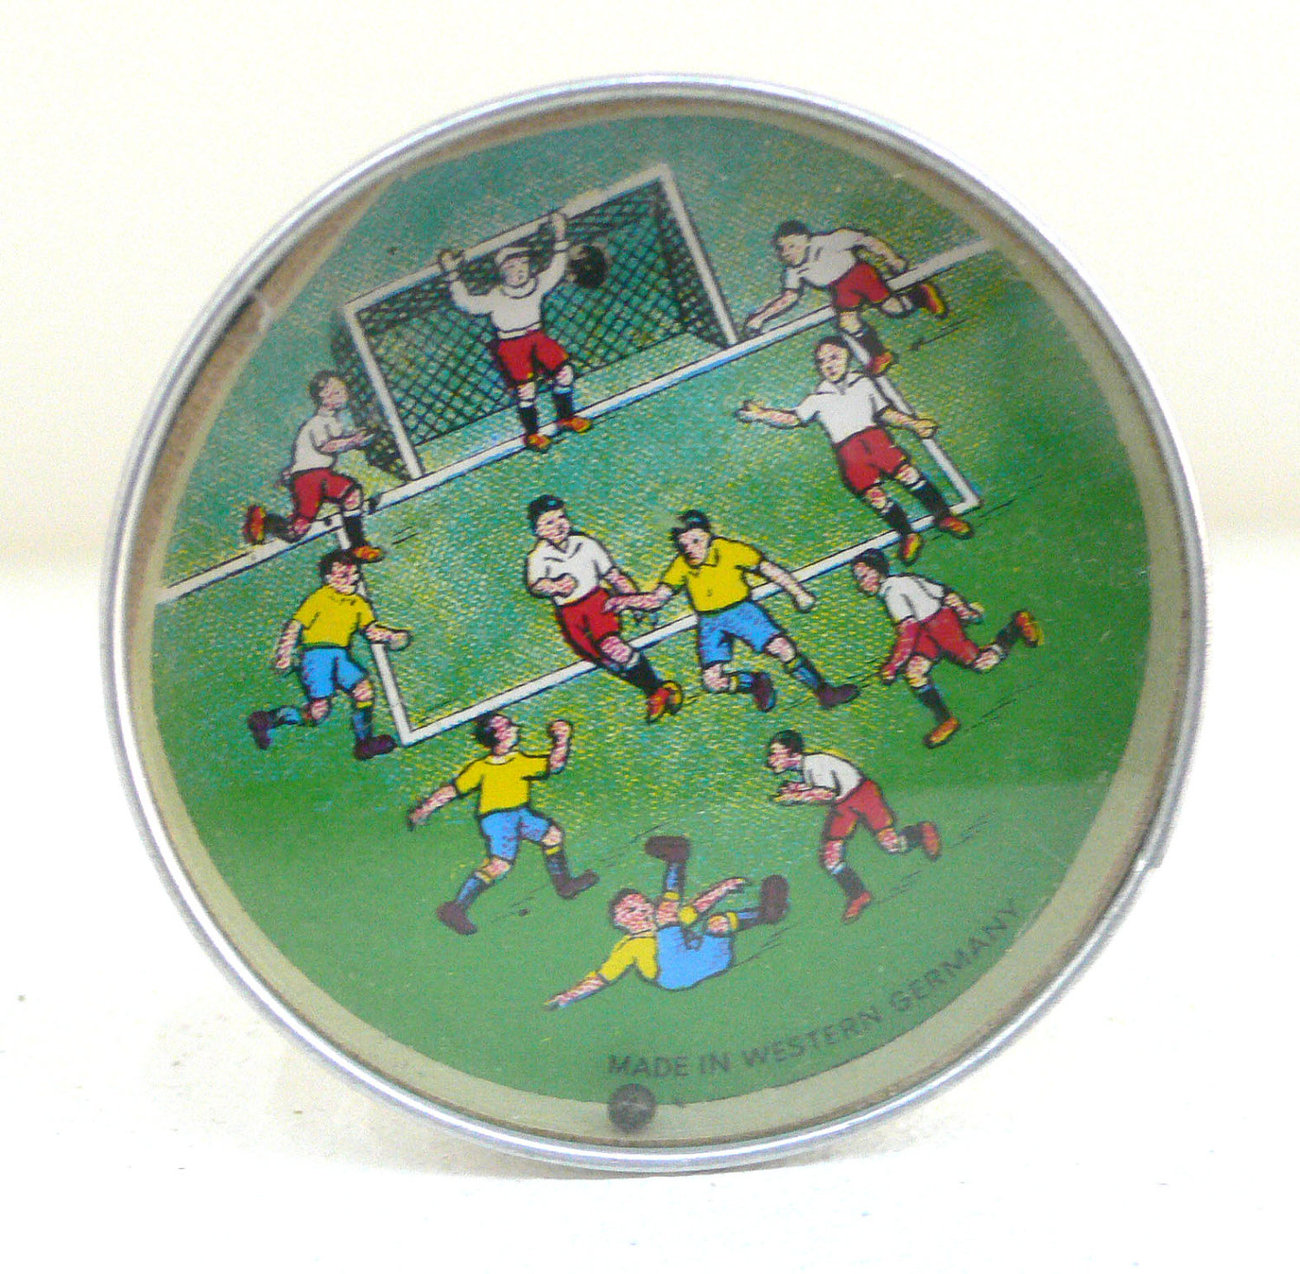 Vintage Dexterity Game FOOTBALL SOCCER FUSSBALL West Germany 1960's